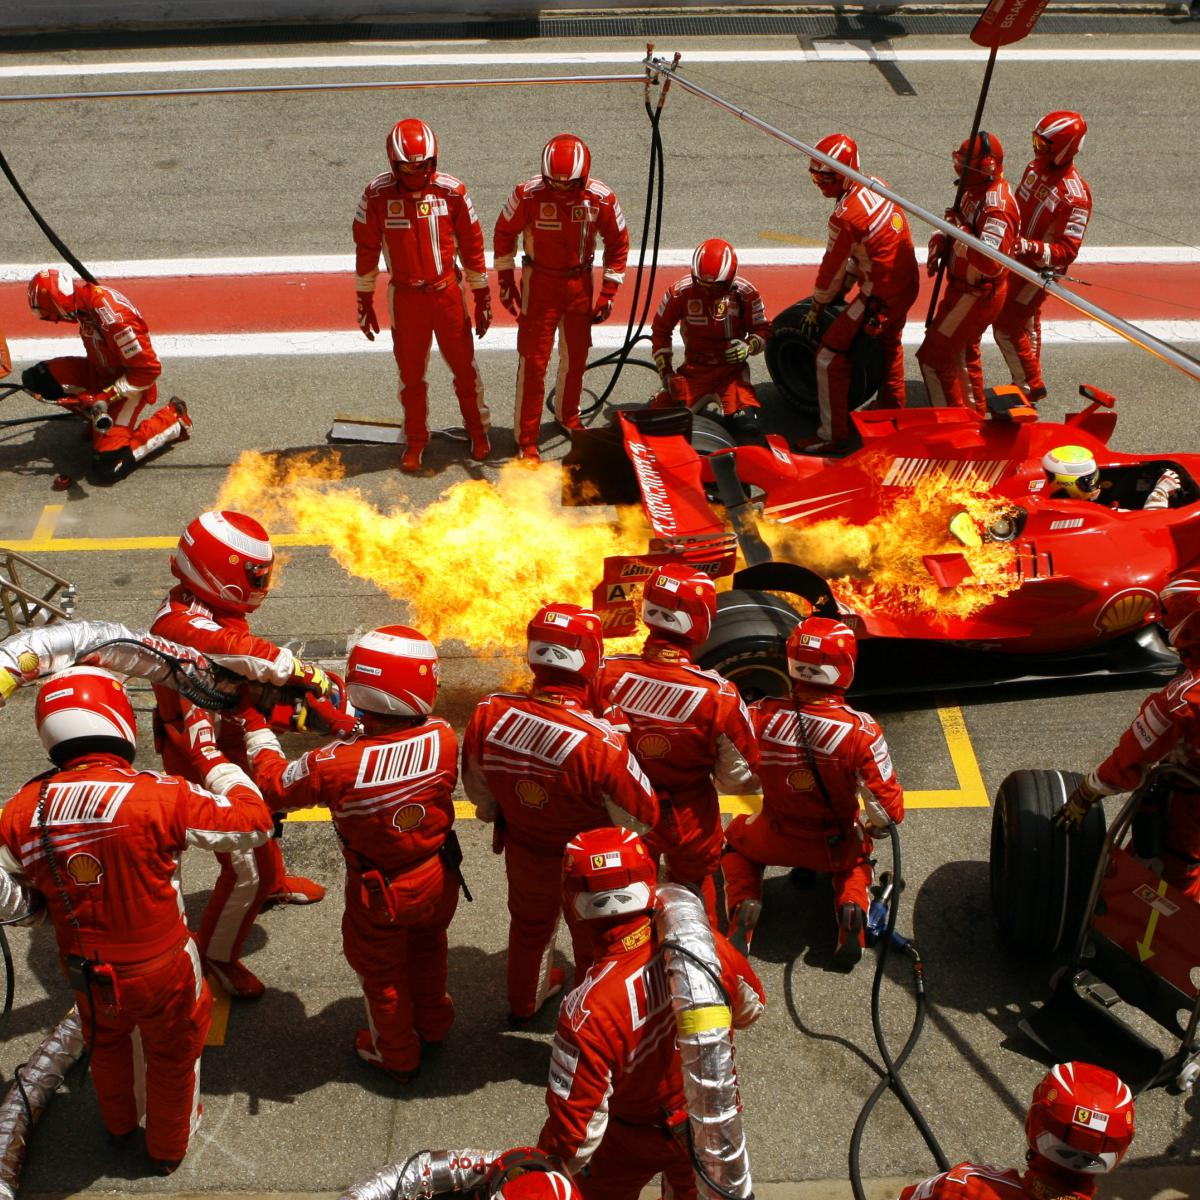 Why The Return Of Refuelling Would Be Bad For Formula 1